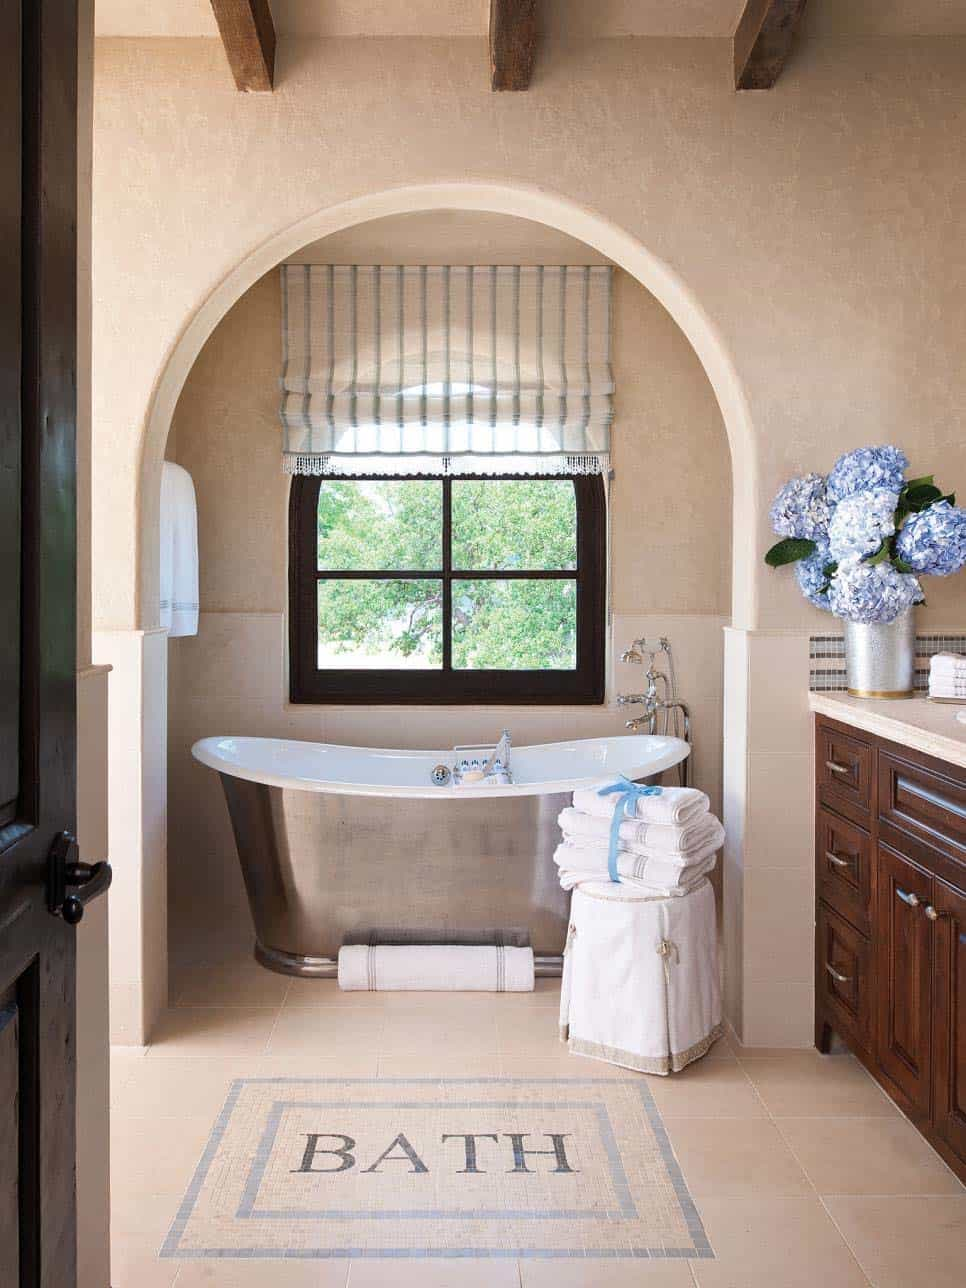 Freestanding-Tubs-Bathroom-Ideas-17-1 Kindesign